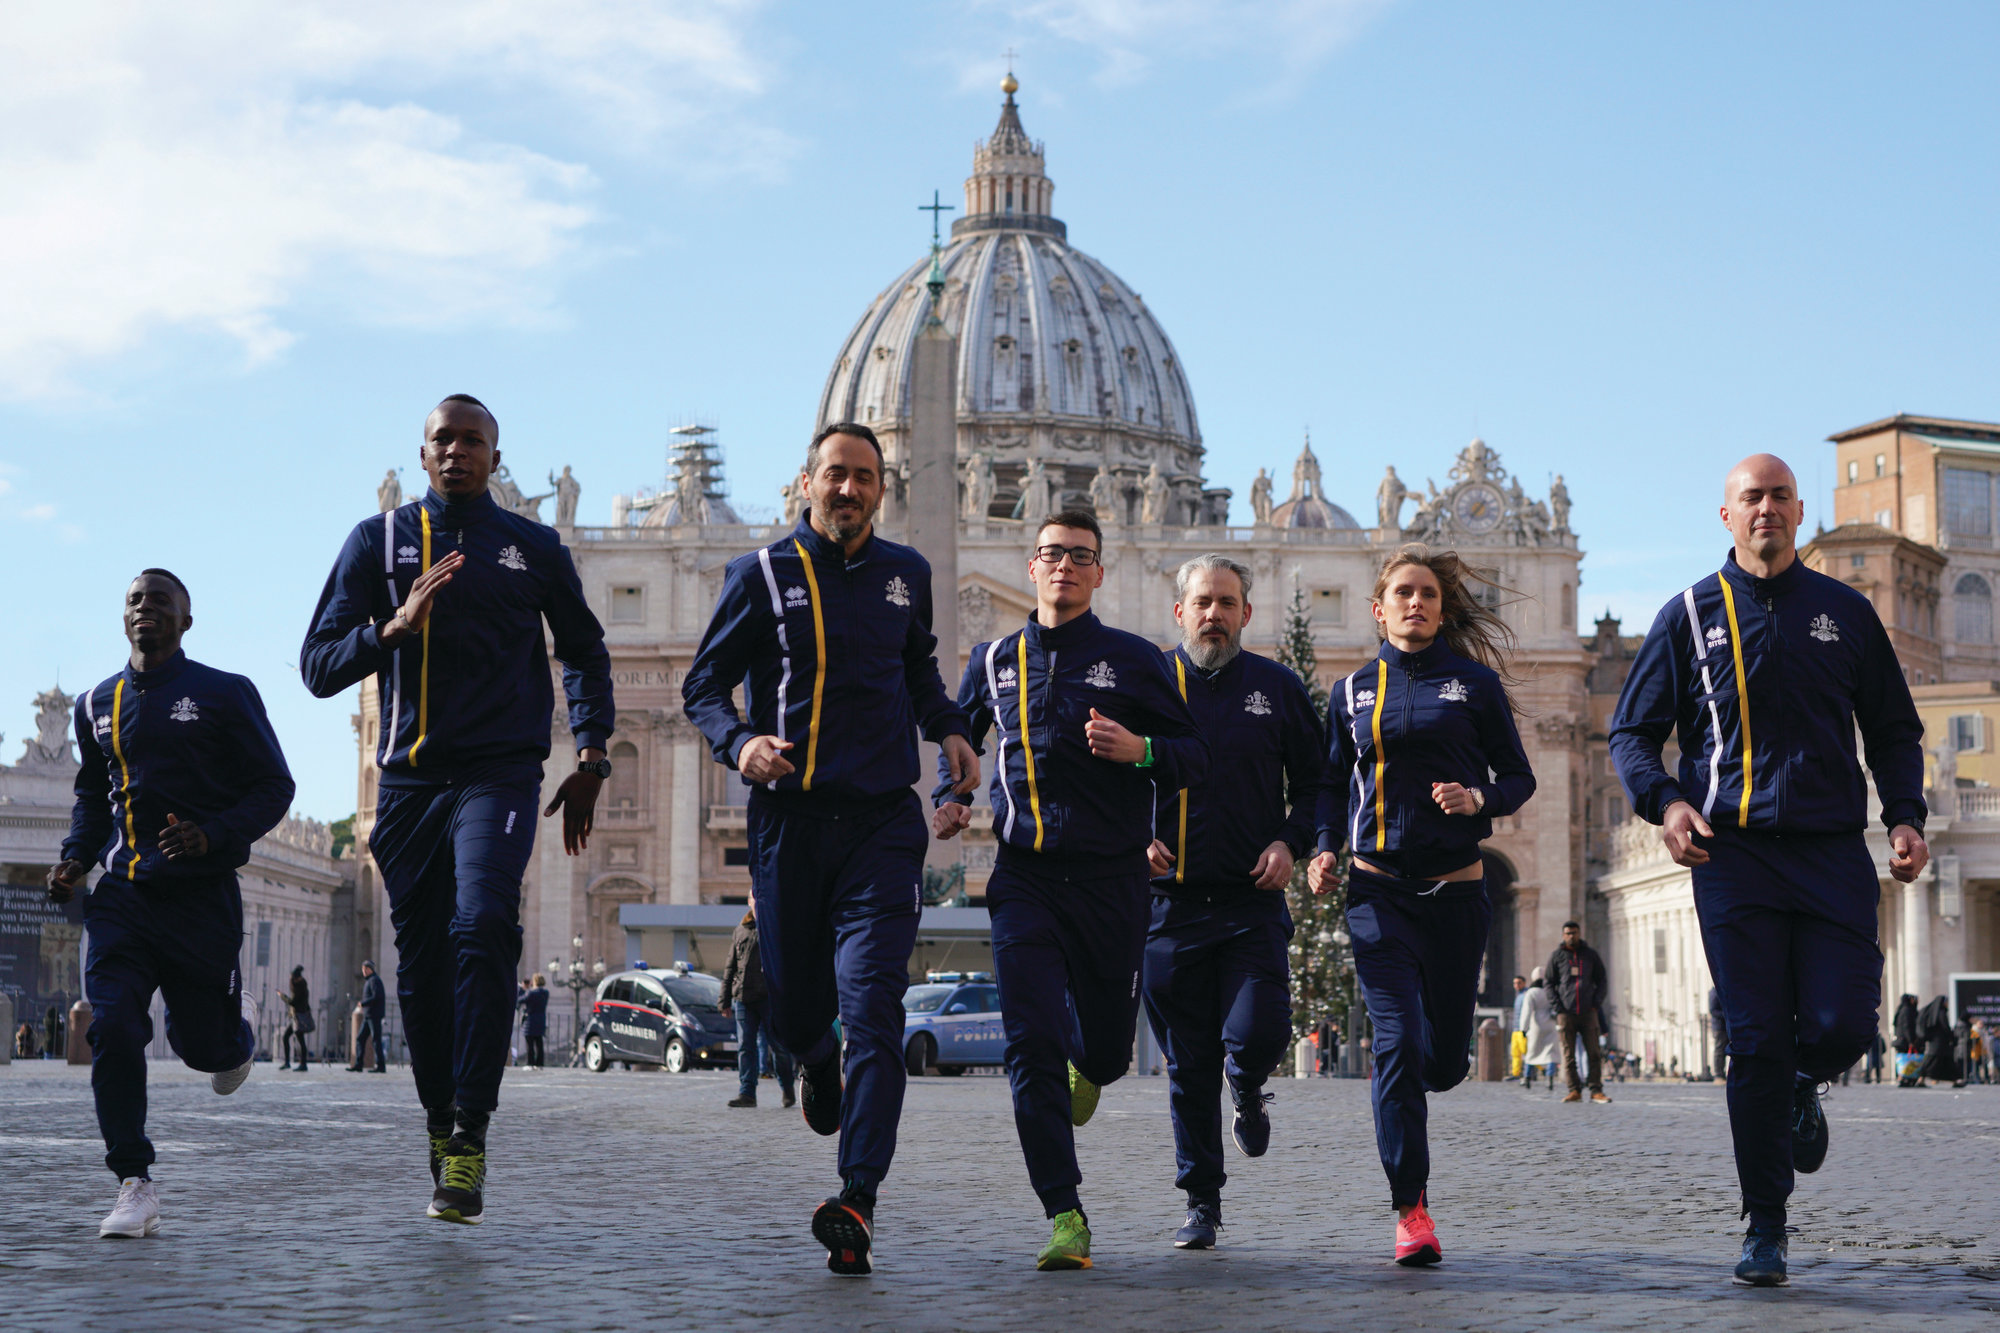 Athletes of the Athletic Vatican sports team run for the media in front of St. Peter's basilica on Thursday. About 60 Holy See employees are the first accredited members of Vatican Athletics.